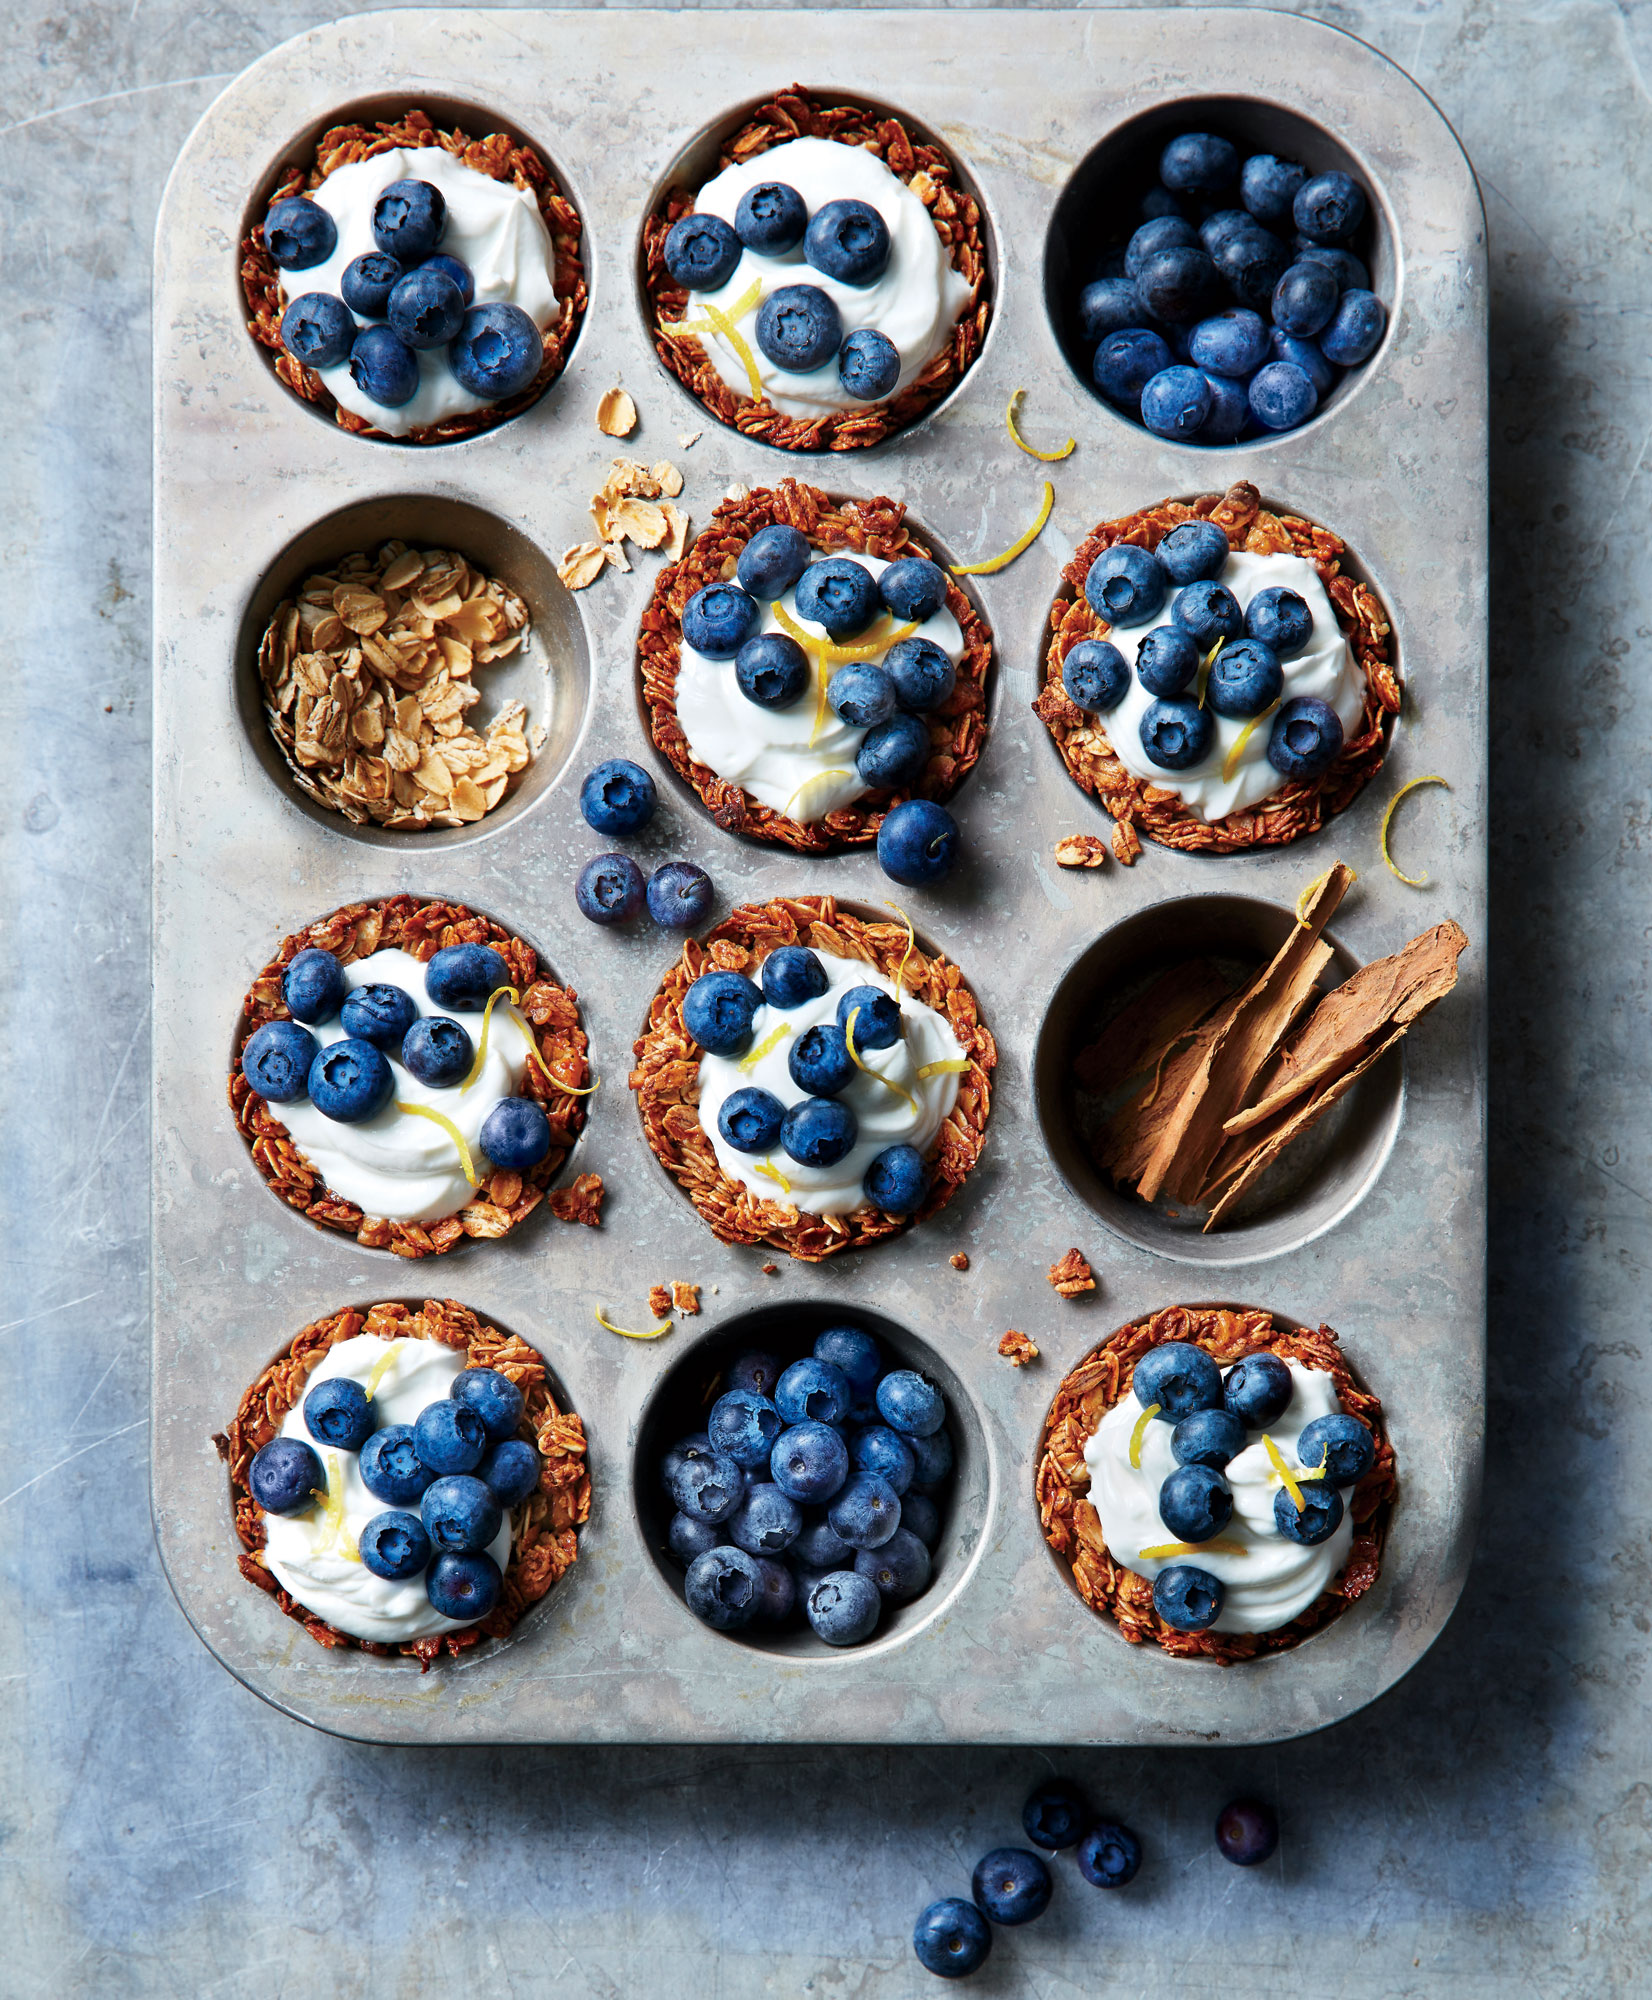 ck-Granola Cups with Yogurt and Berries